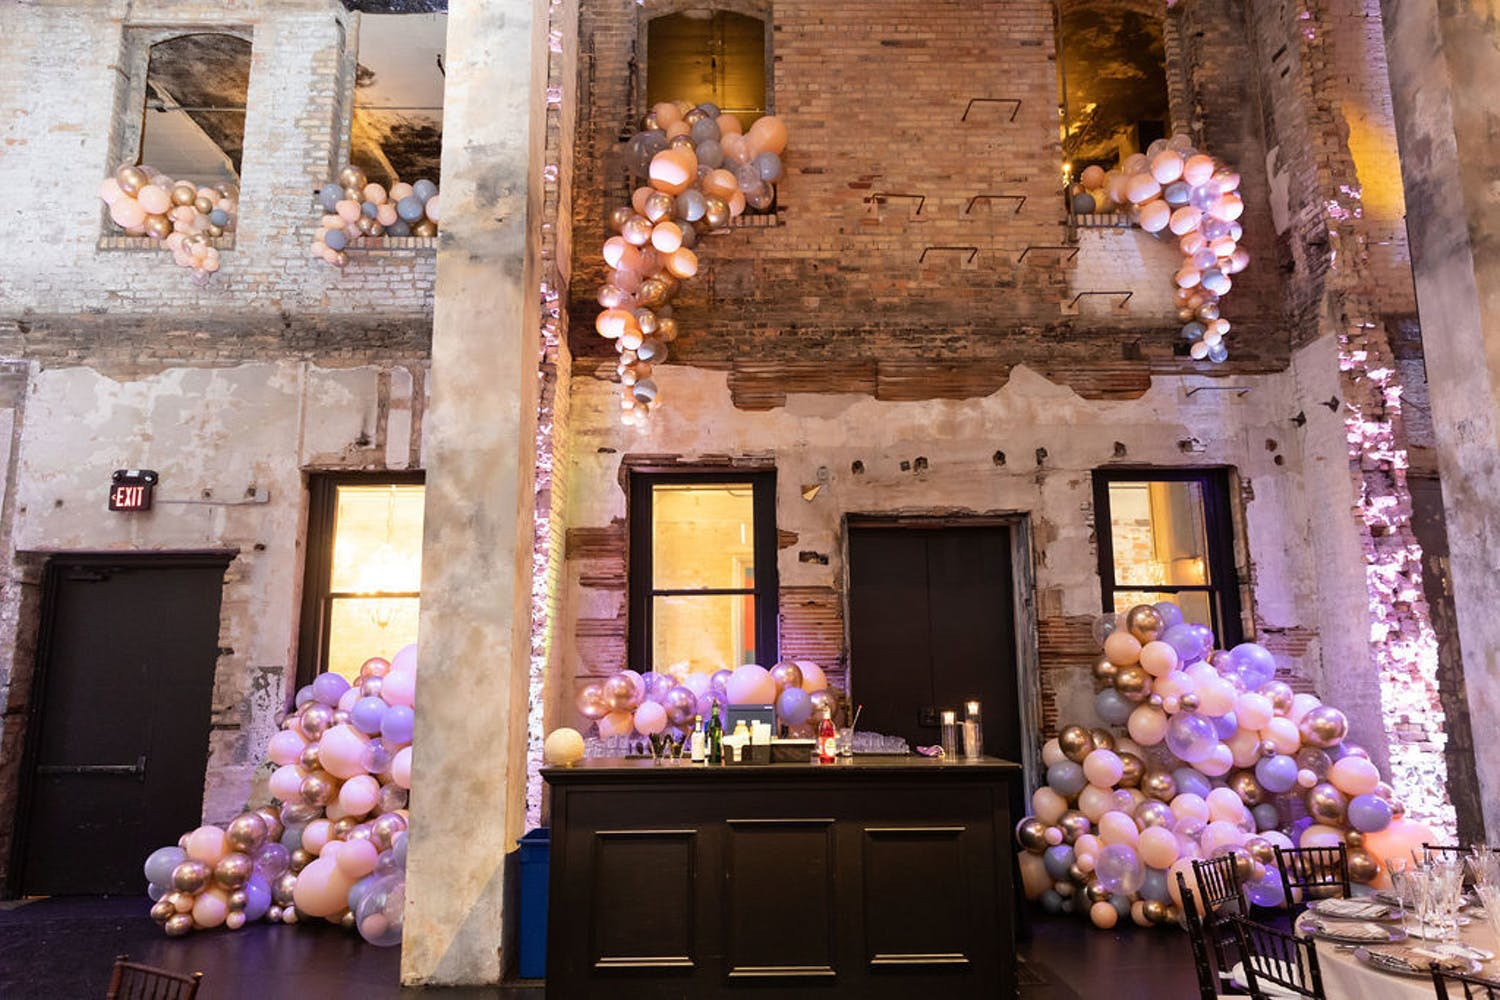 Raw Venue Space with Brick Soaring Walls Covered in Cascading Purple and Pink Balloons for 50th-Wedding Anniversary Party | PartySlate